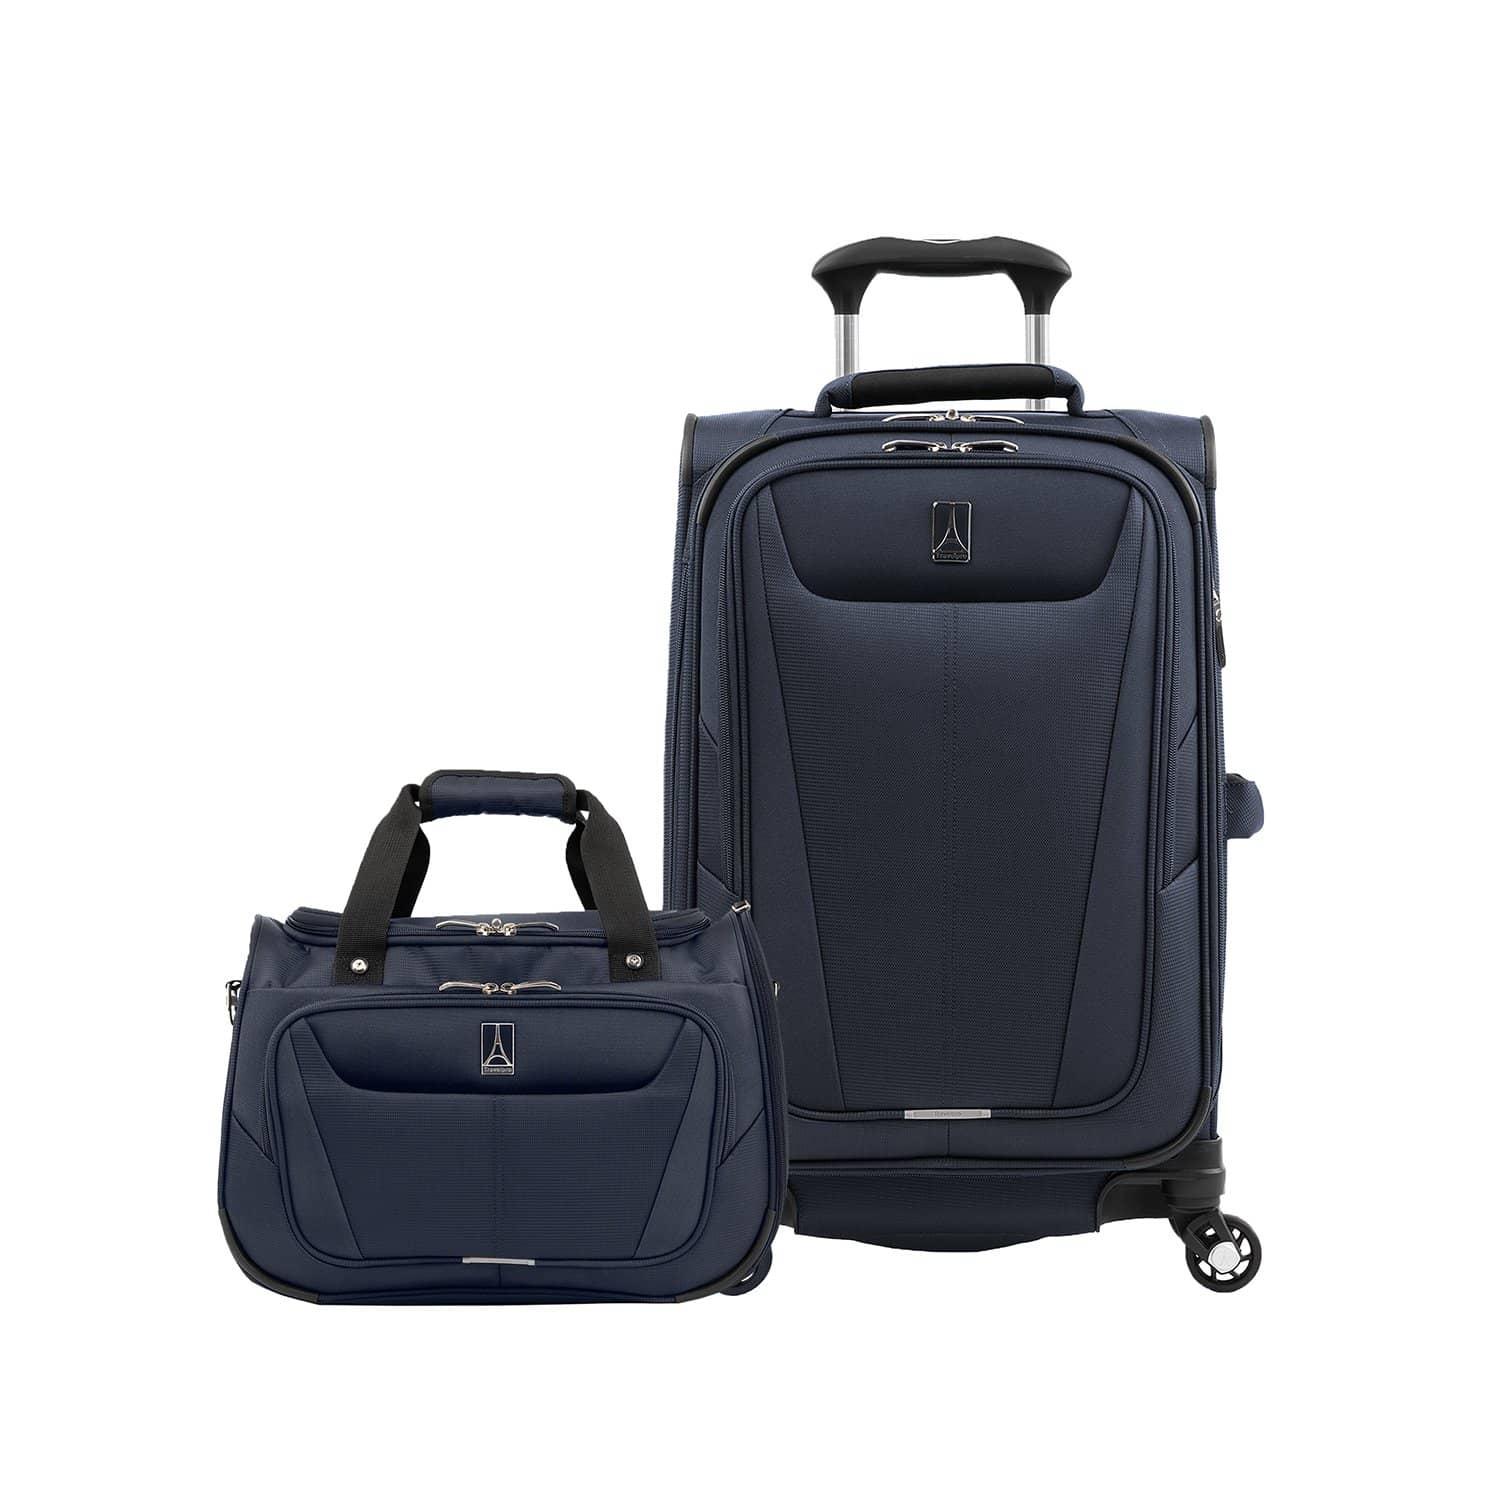 Travelpro Maxlite® 5 Carry Me Away Luggage Set MIDNIGHT BLUE